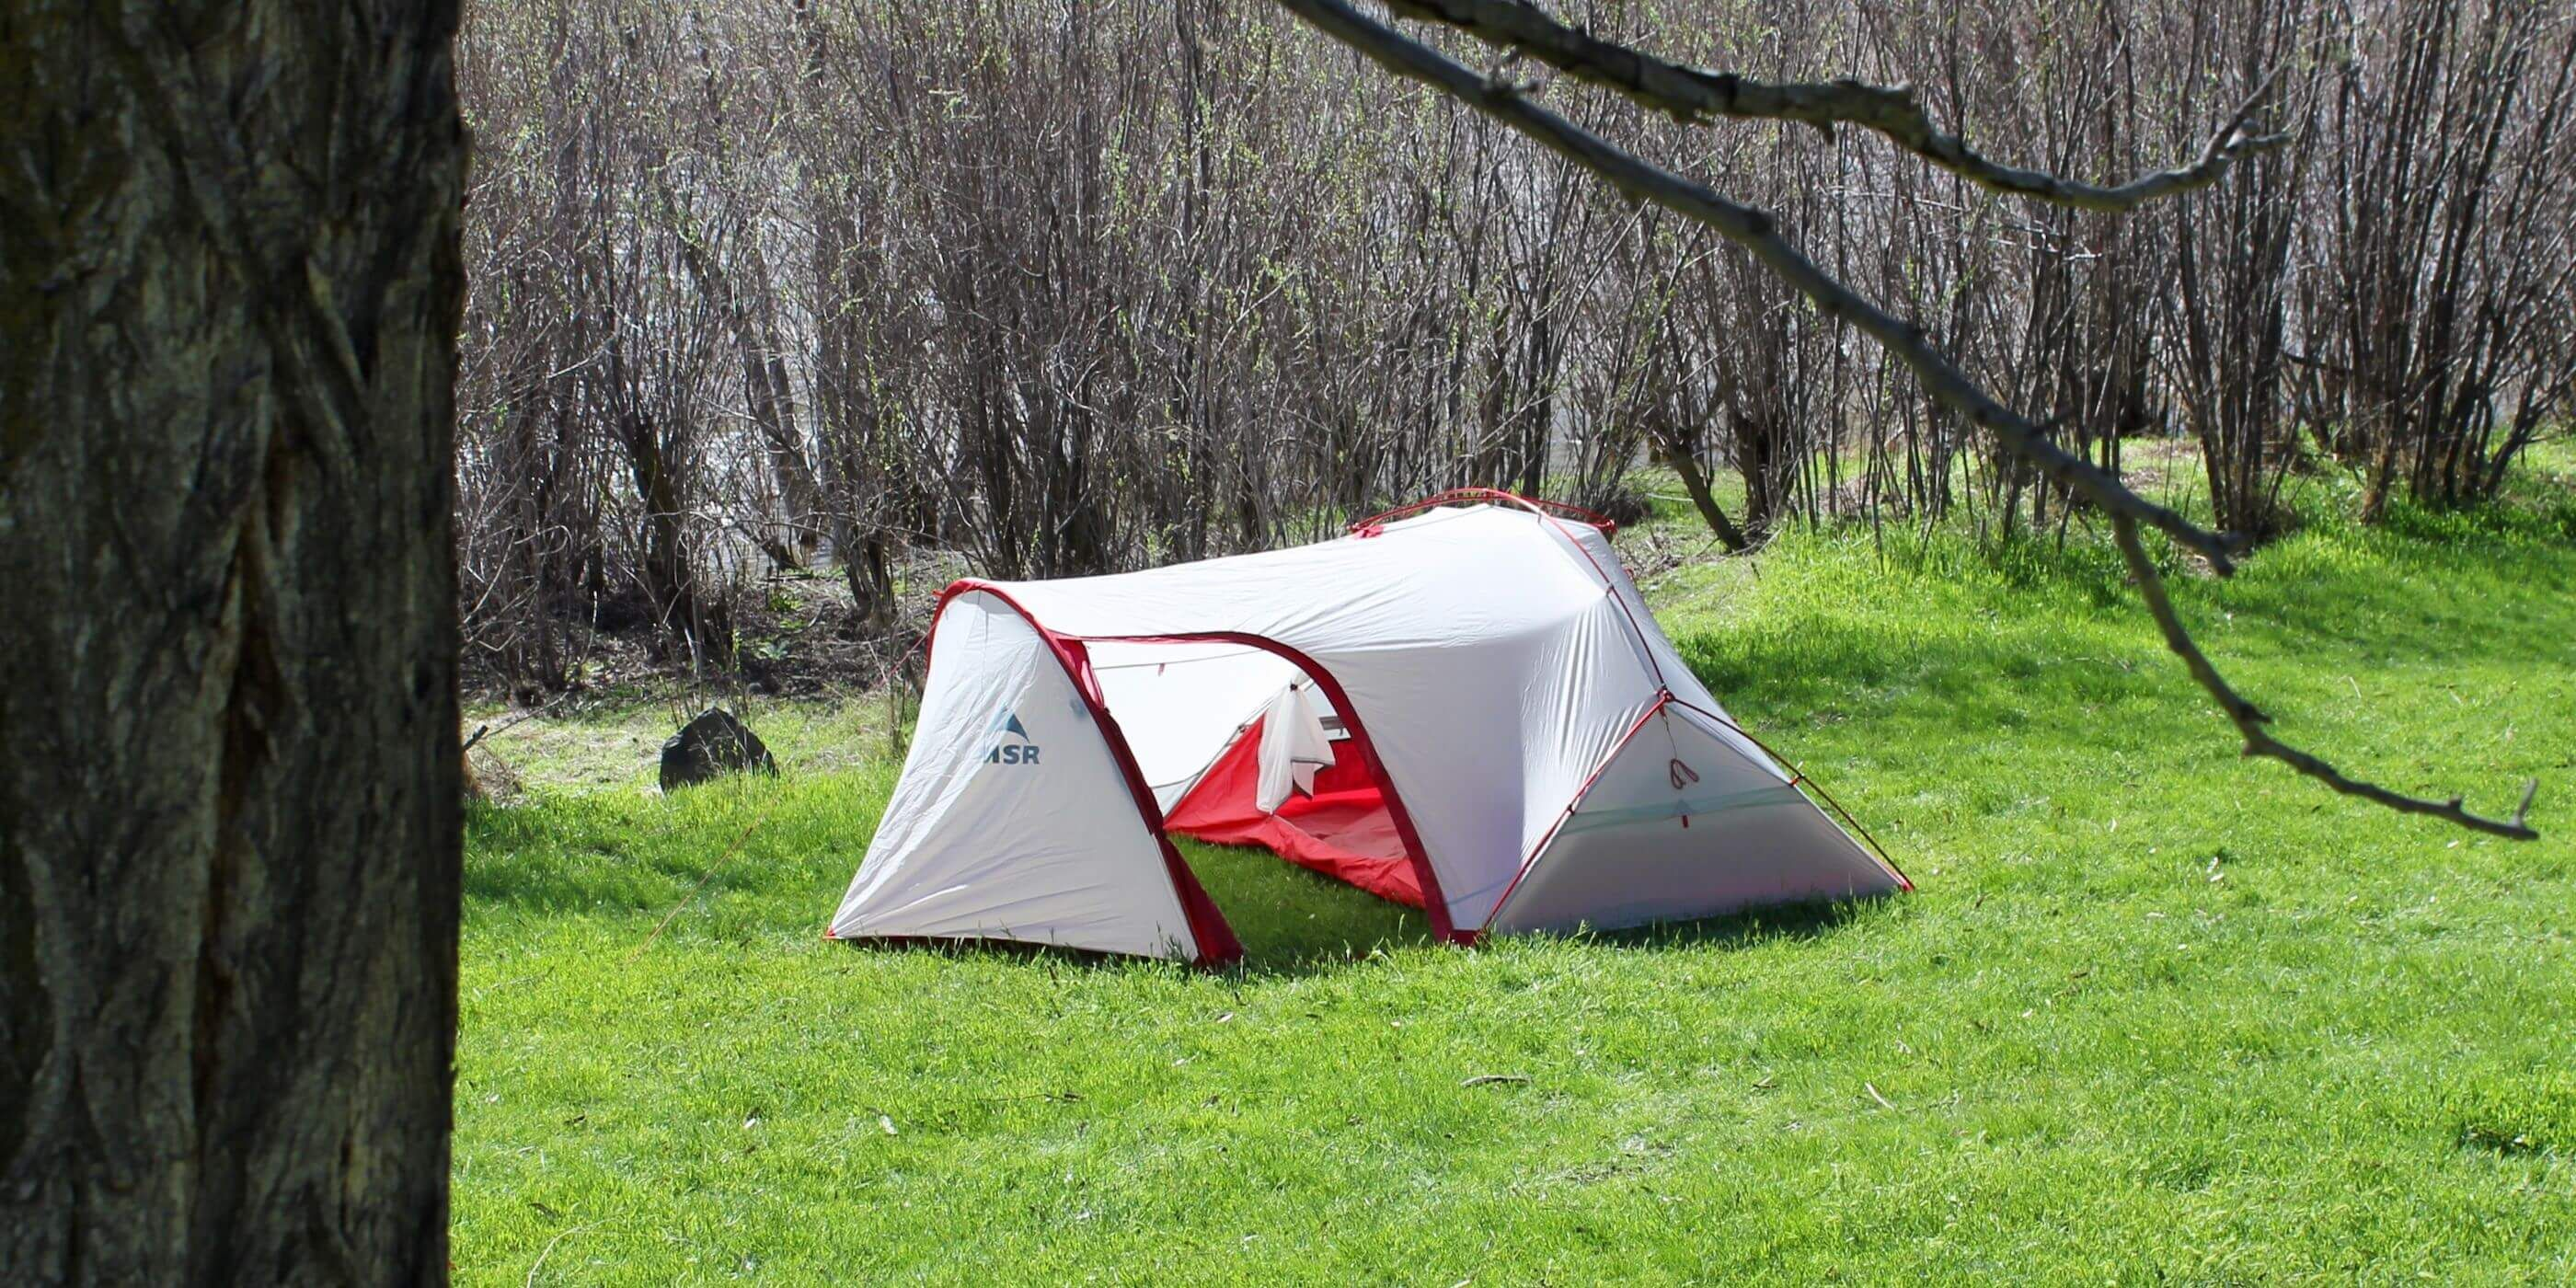 Msr Hubba Tour 2 Tent Review Man Makes Fire Best Tents For Camping Tent Reviews Tent